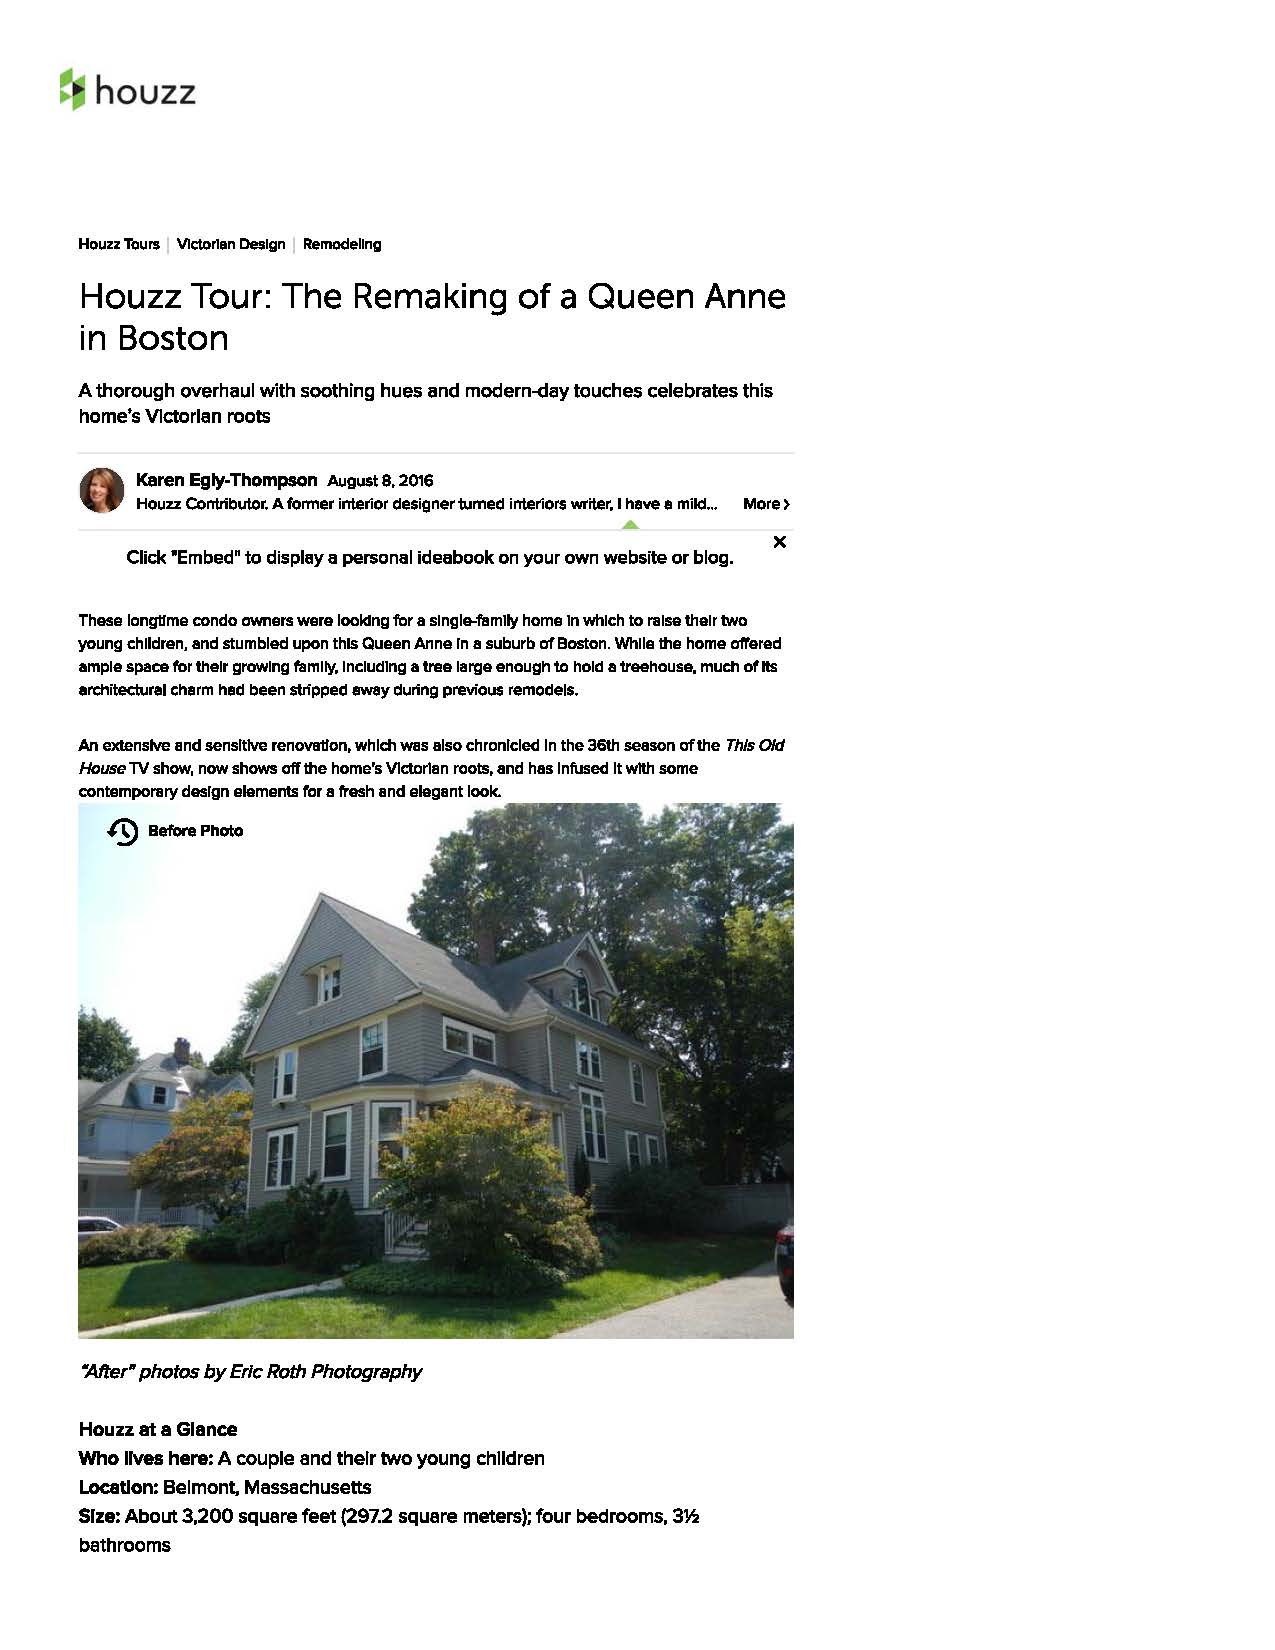 Houzz Tour_ The Remaking of a Queen Anne in Boston (1)_Page_01.jpg